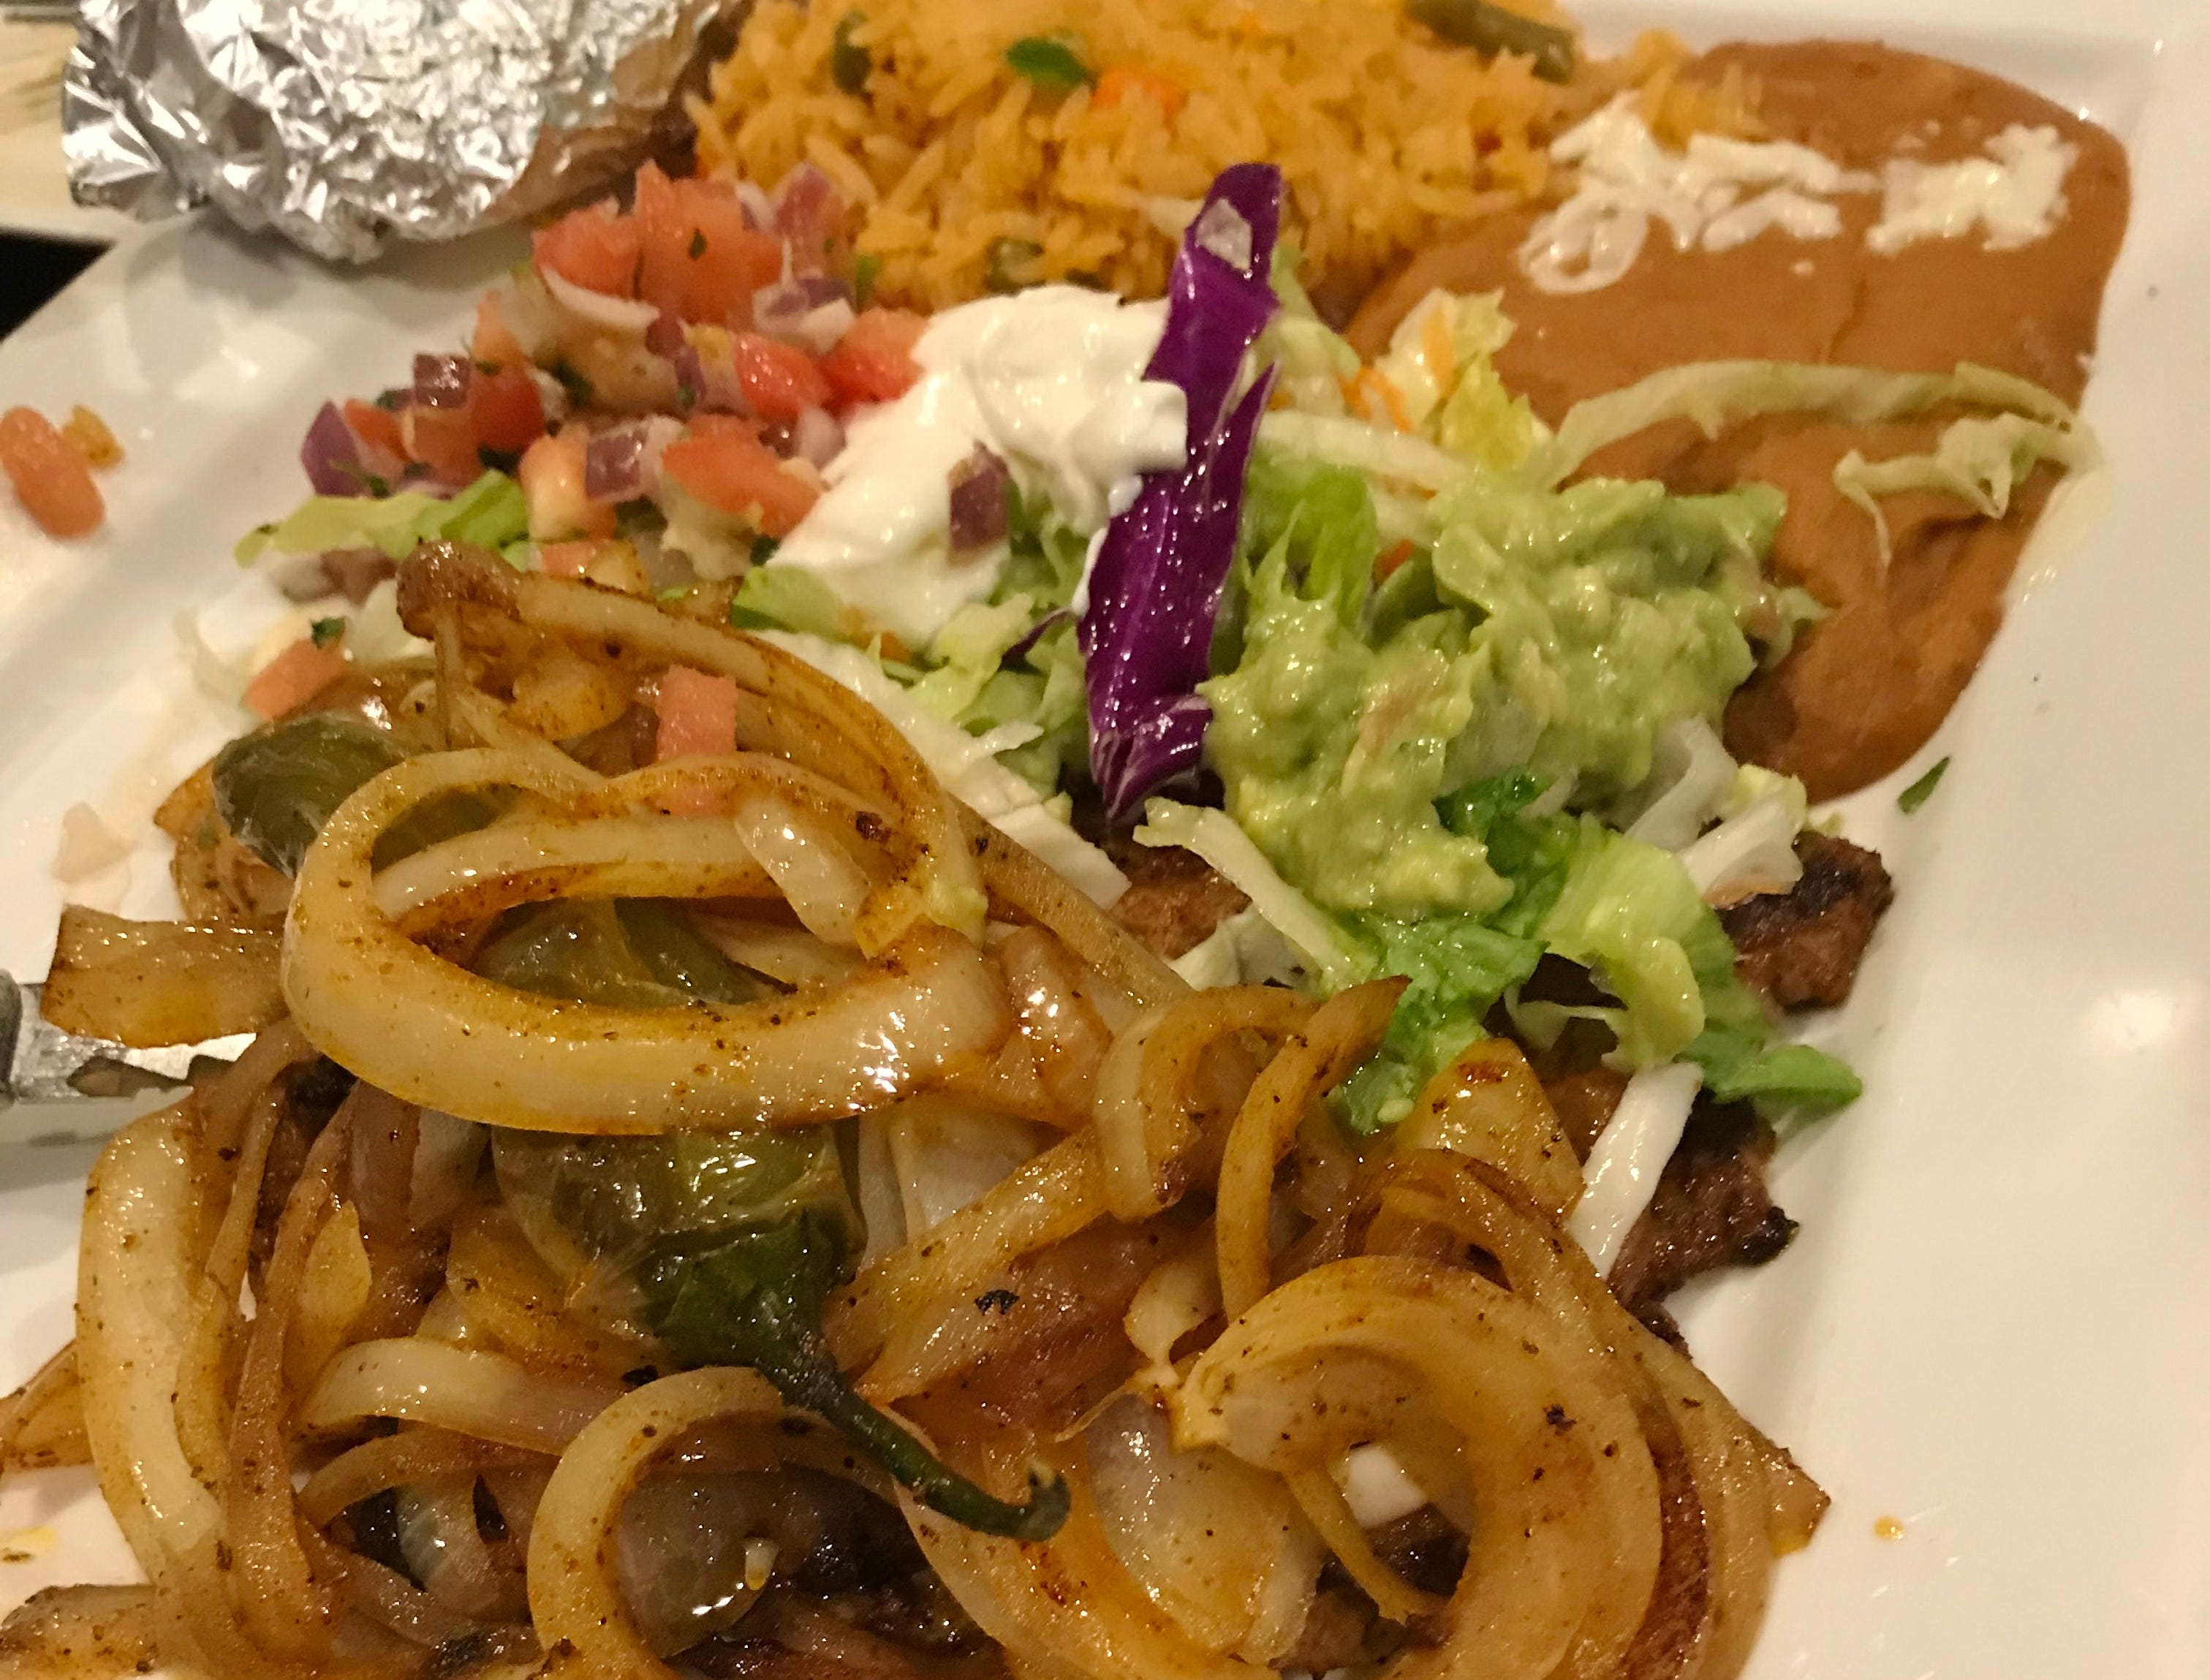 The Carne Asada had a tender slice of rib eye smothered with grilled onions.